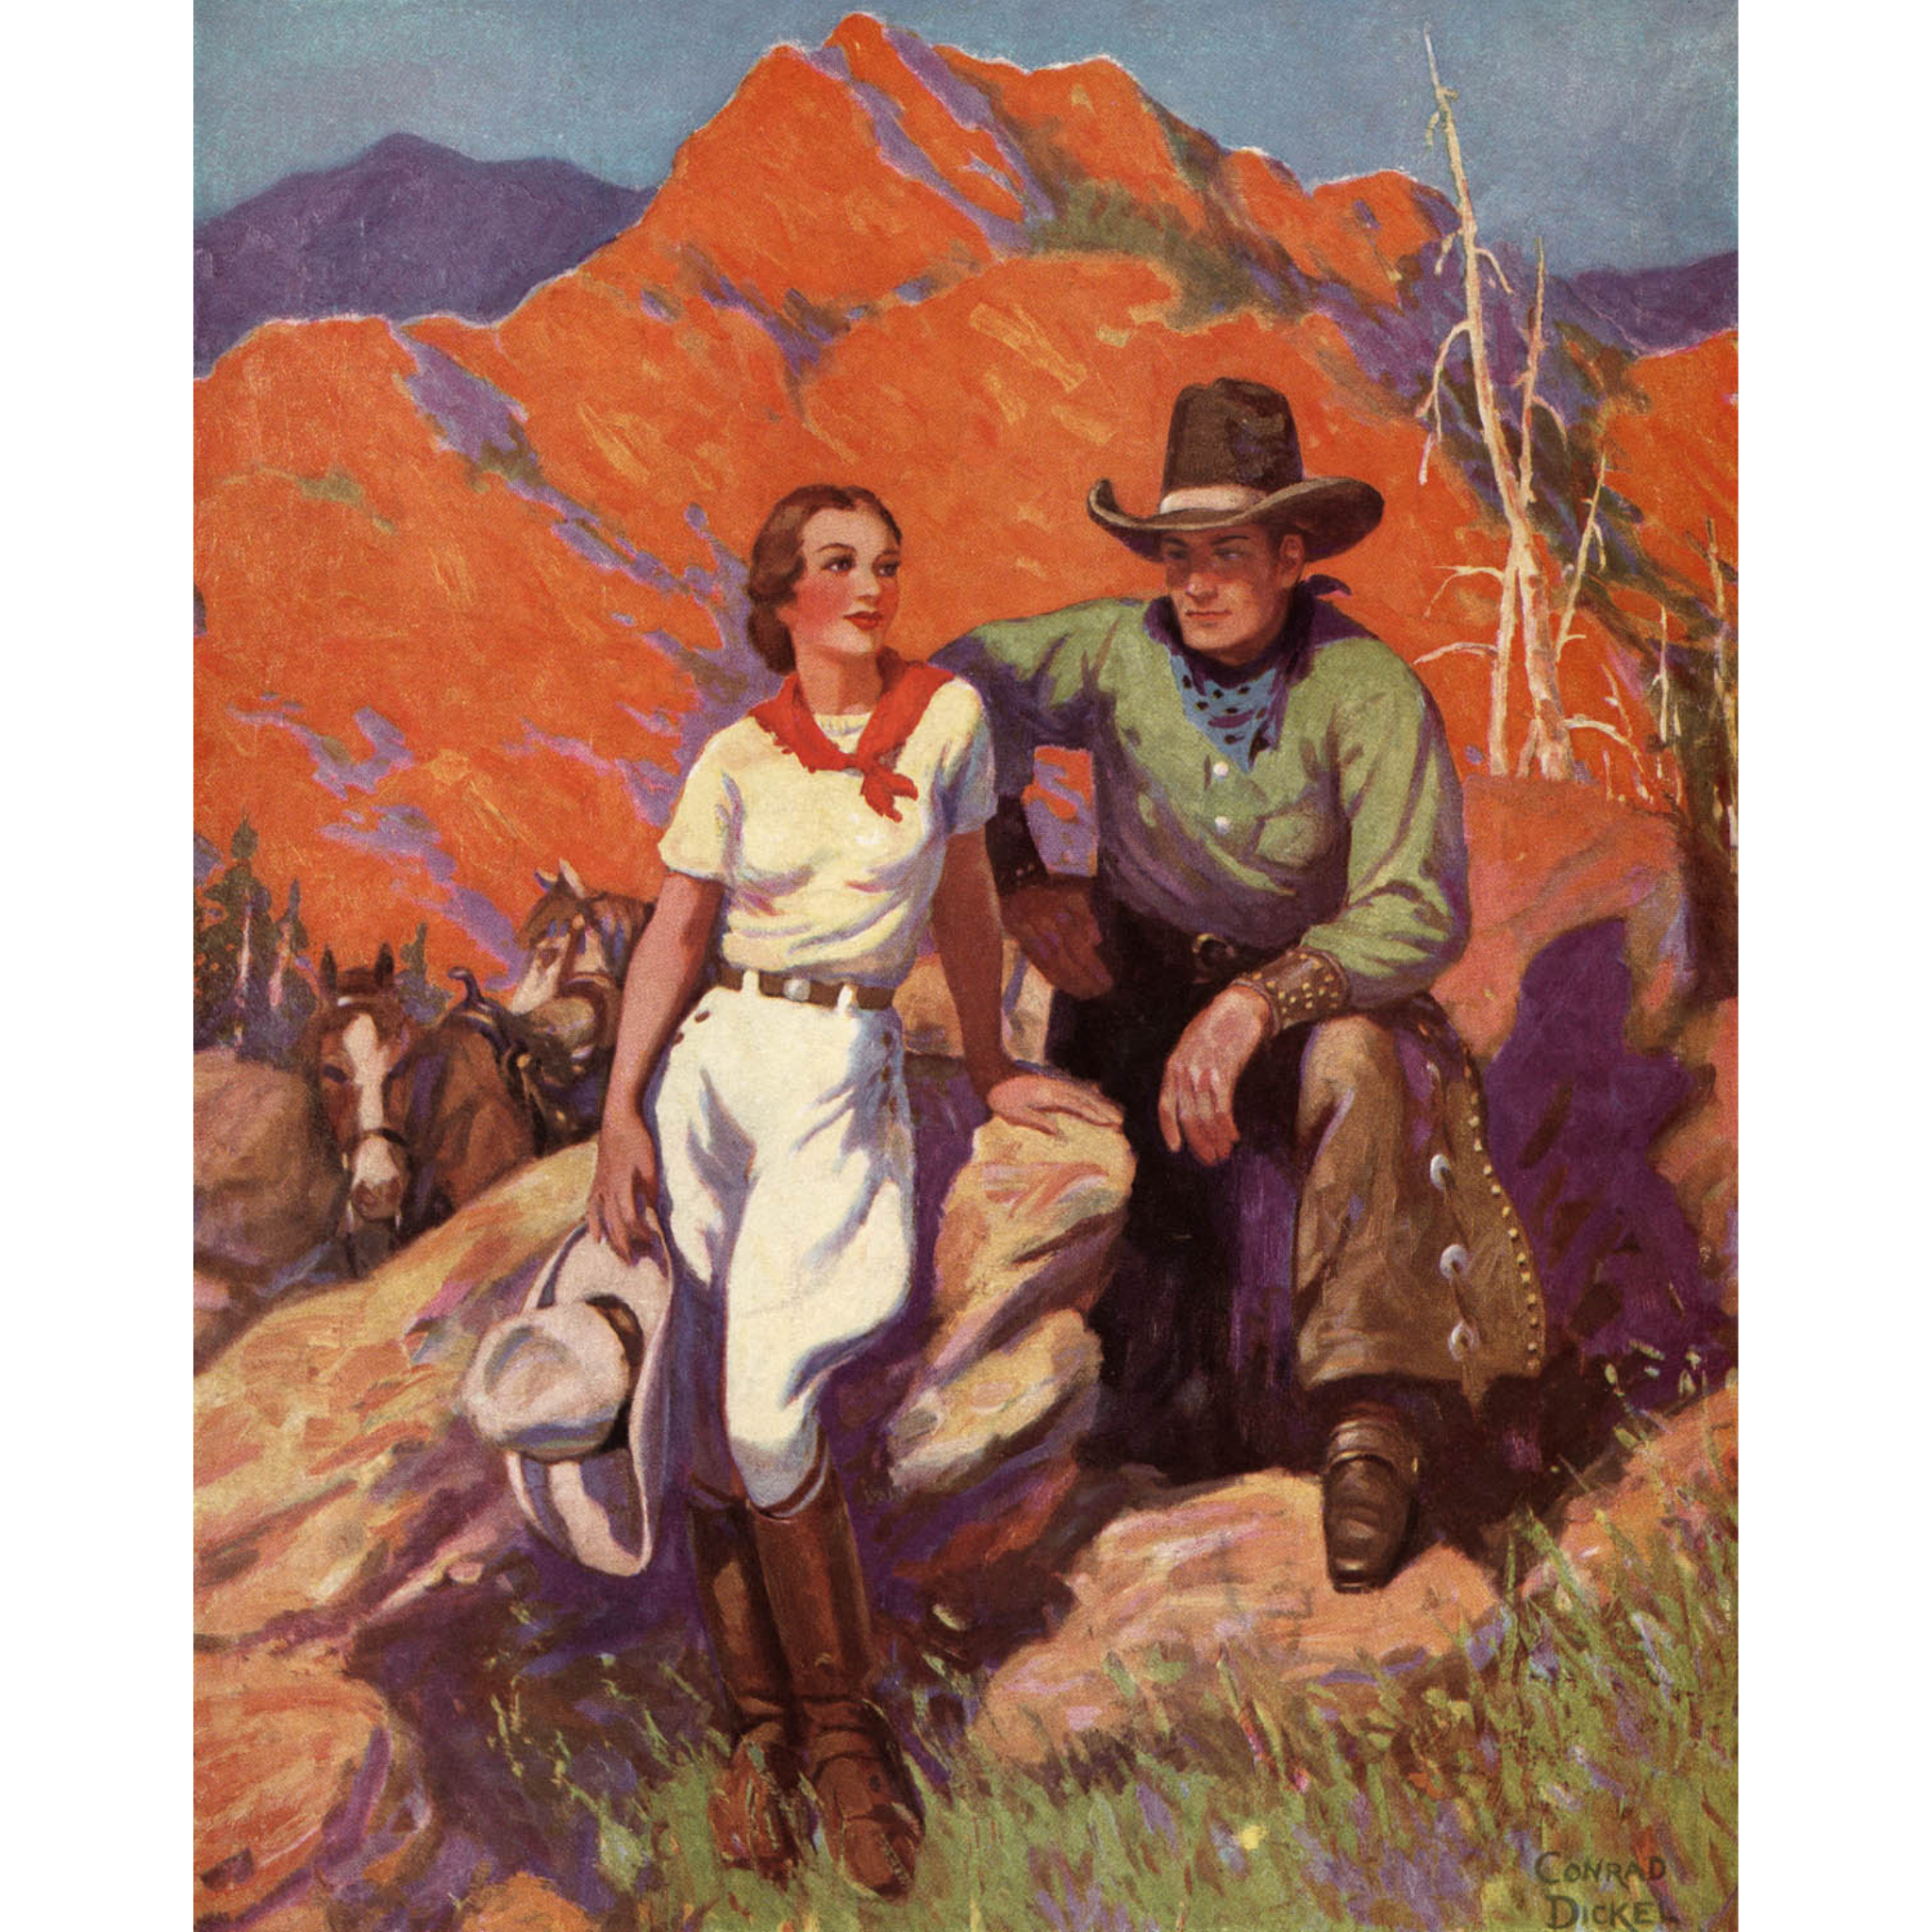 Cowboy and Cowgirl Sitting on Rock - ca. 1935 Conrad Dickel Lithograph